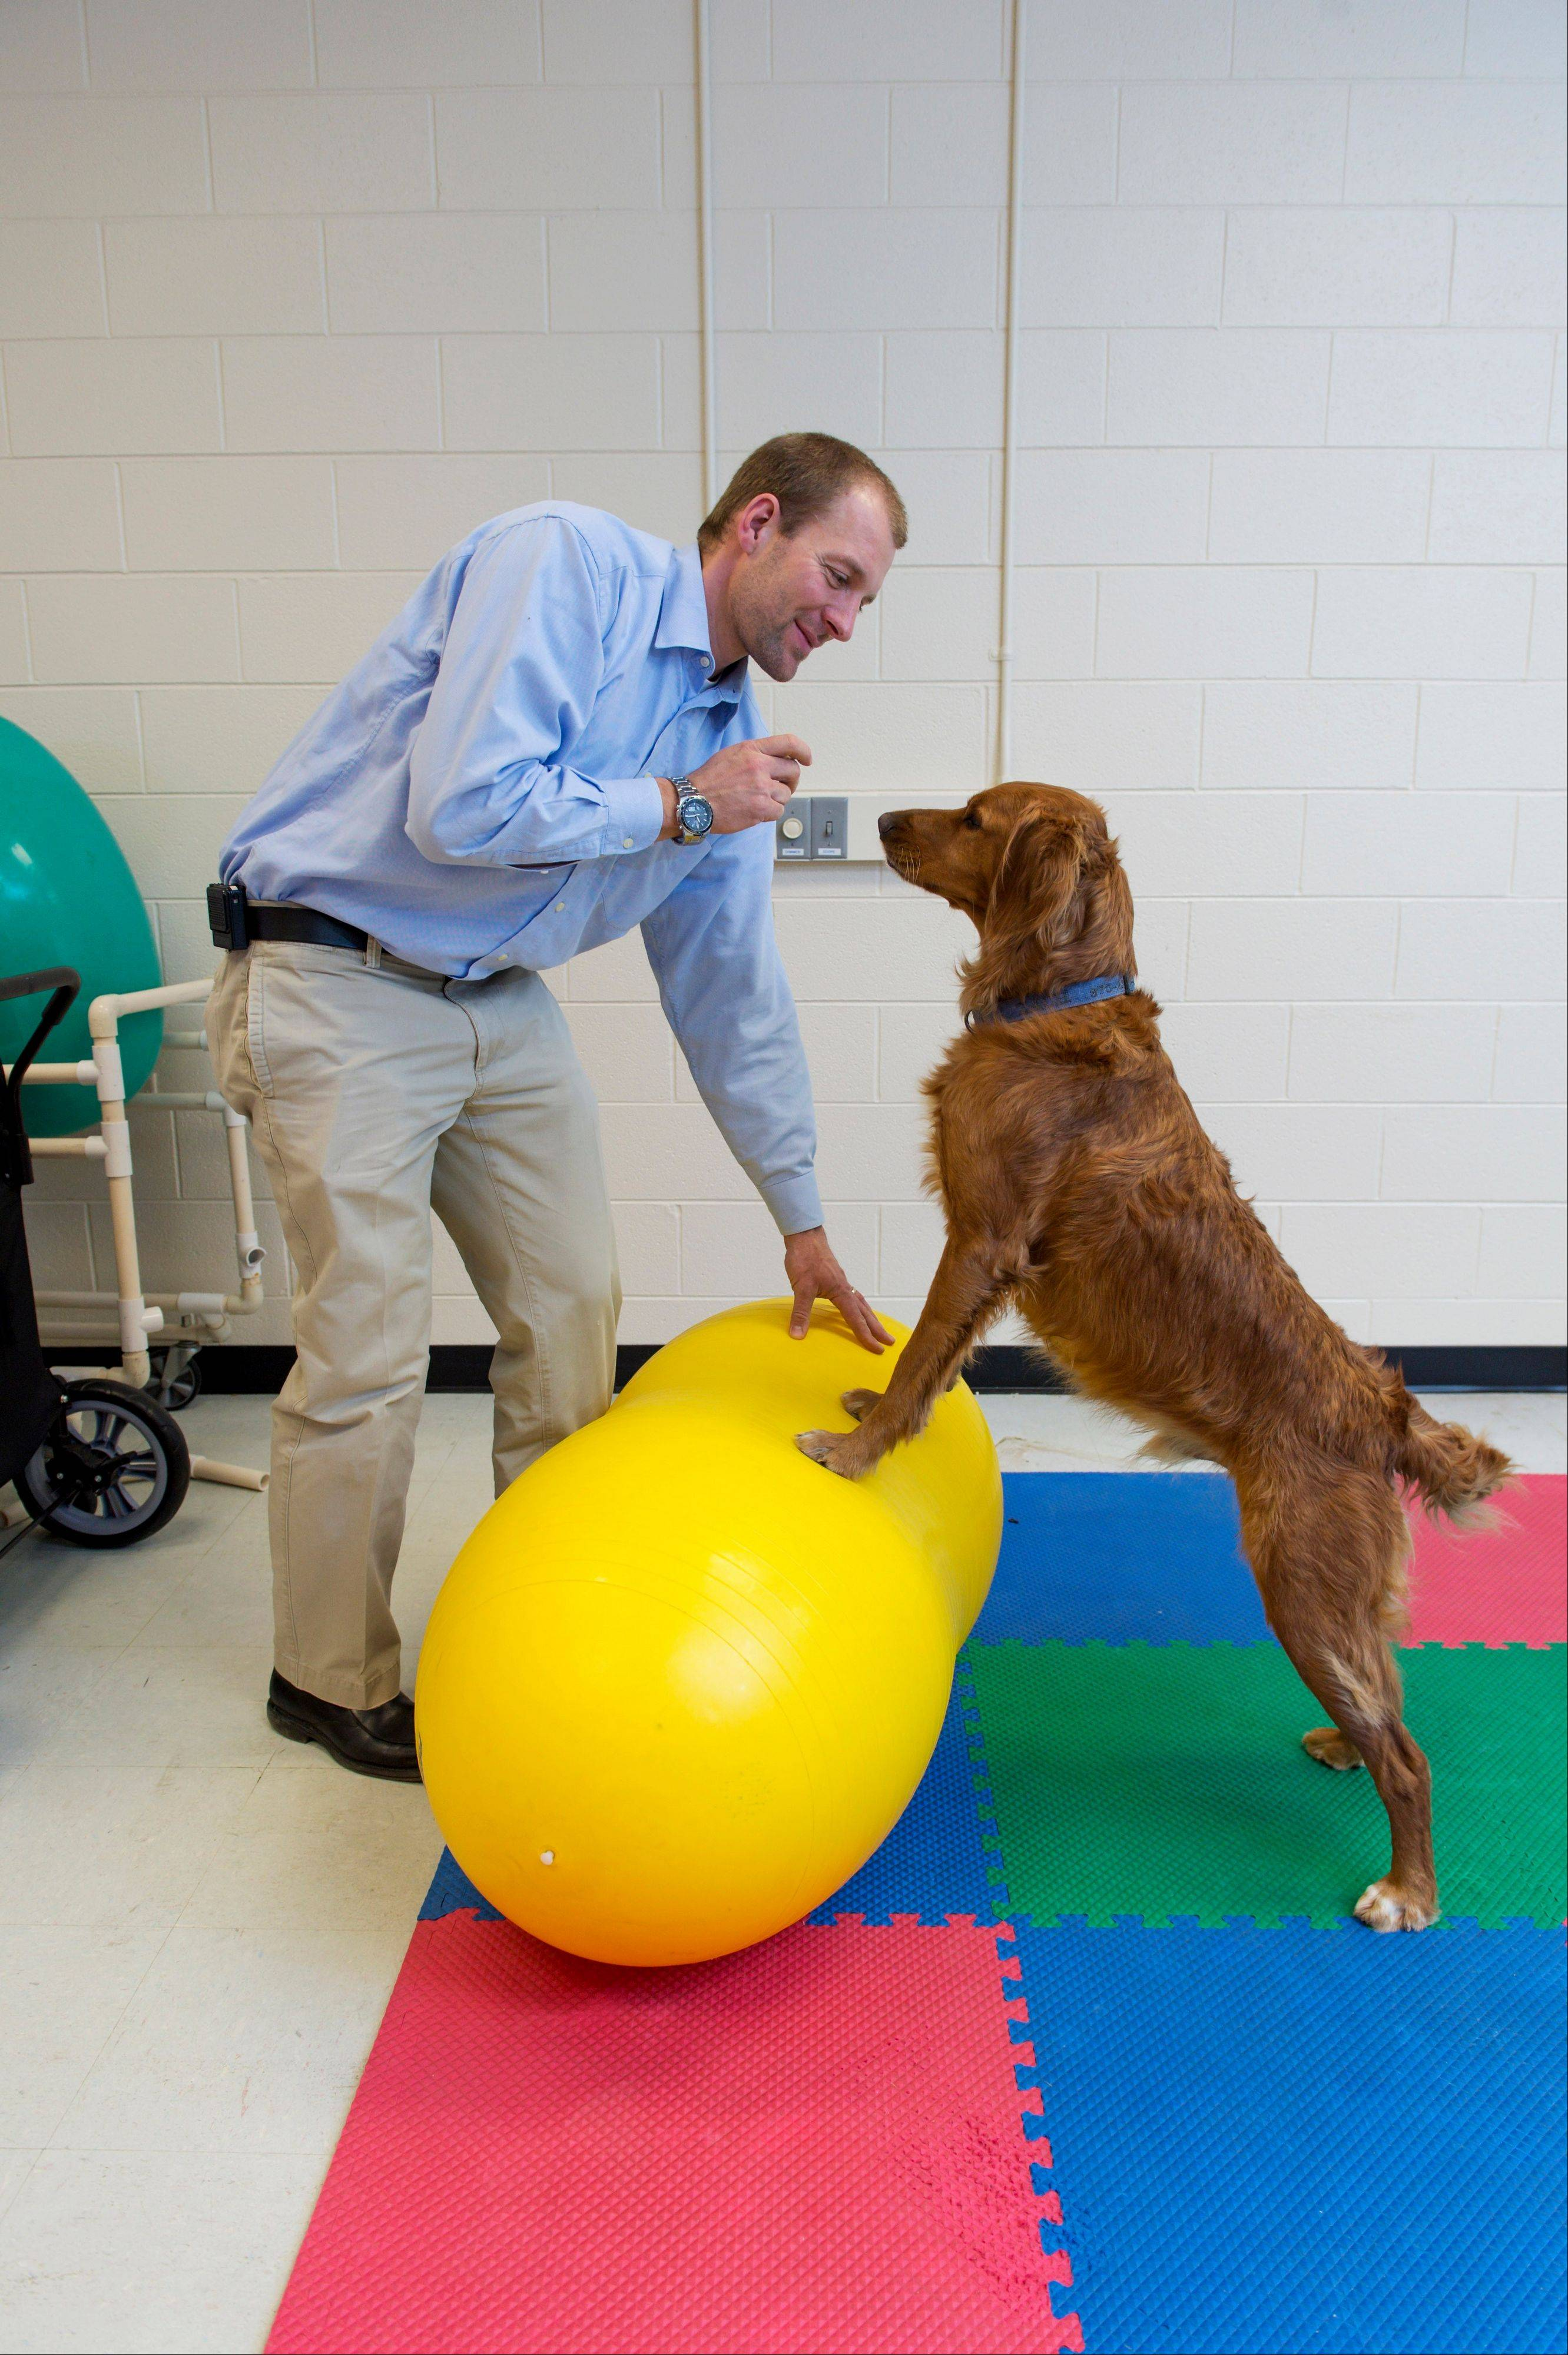 Dr. Felix Duerr and a golden retriever named Zack demonstrate a core stabilization exercise at the Small Animal Orthopaedics at the College of Veterinary Medicine and Biomedical Sciences, in Fort Collins, Colo.